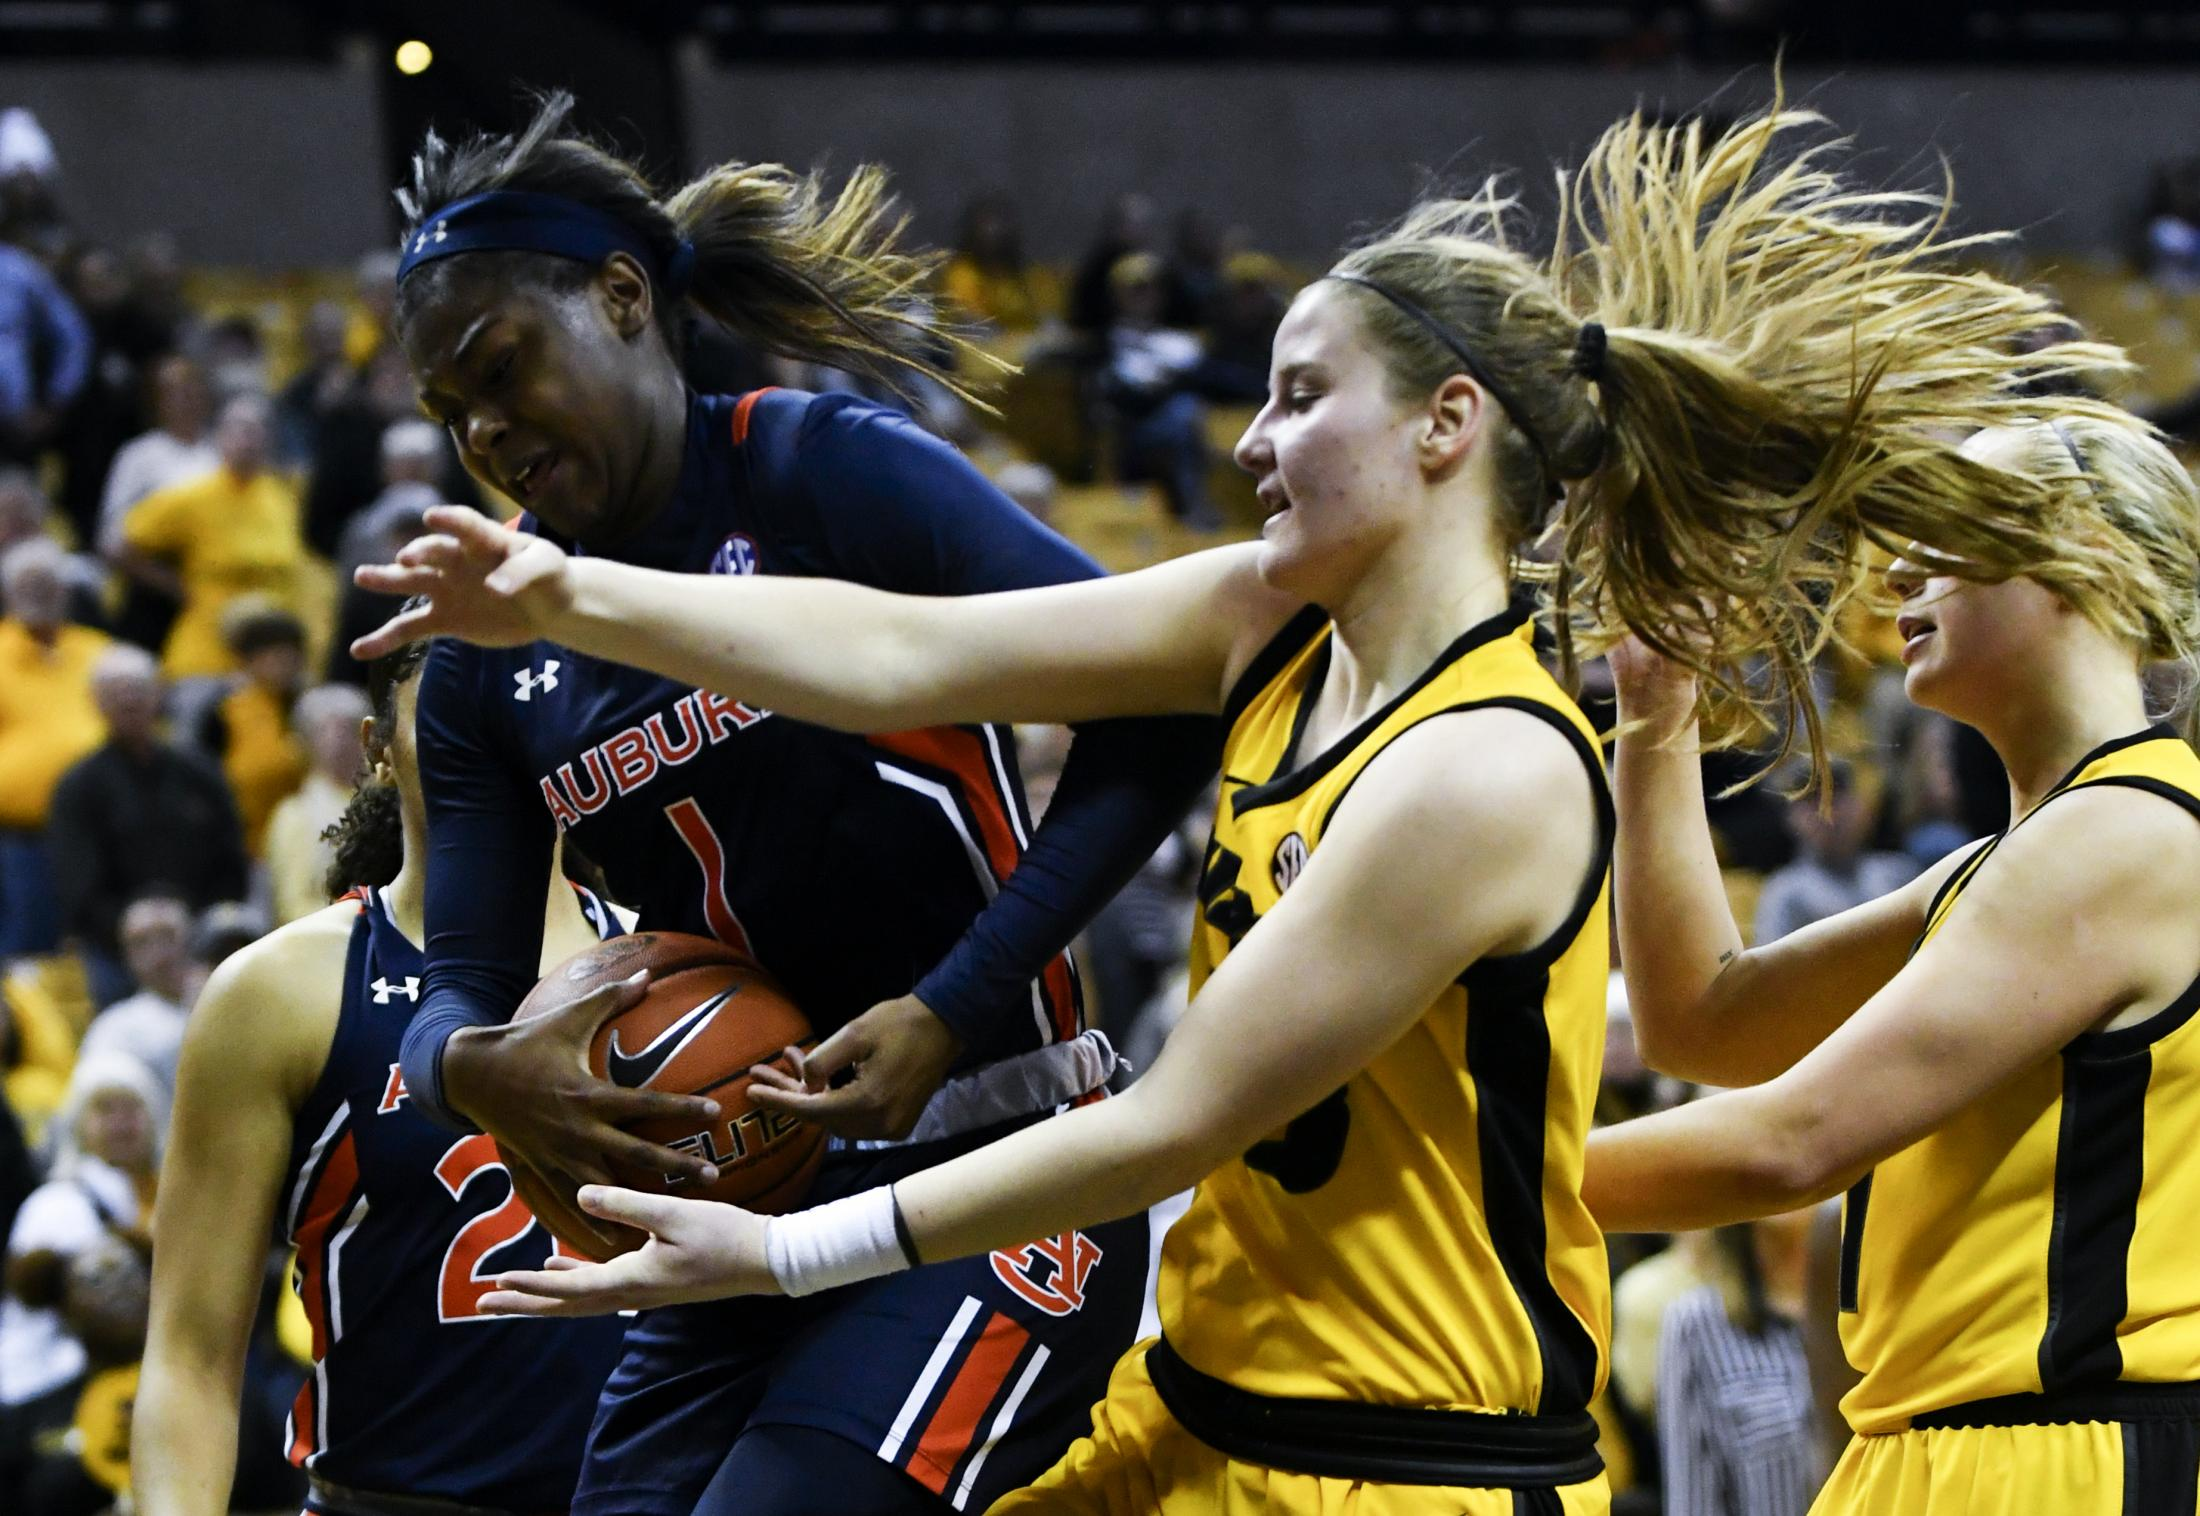 University of Missouri freshman Haley Frank attempts to steal the ball from Auburn University sophomore Robyn Benton on Feb. 27, 2020, at Mizzou Arena. Missouri lost to Auburn 95-82.